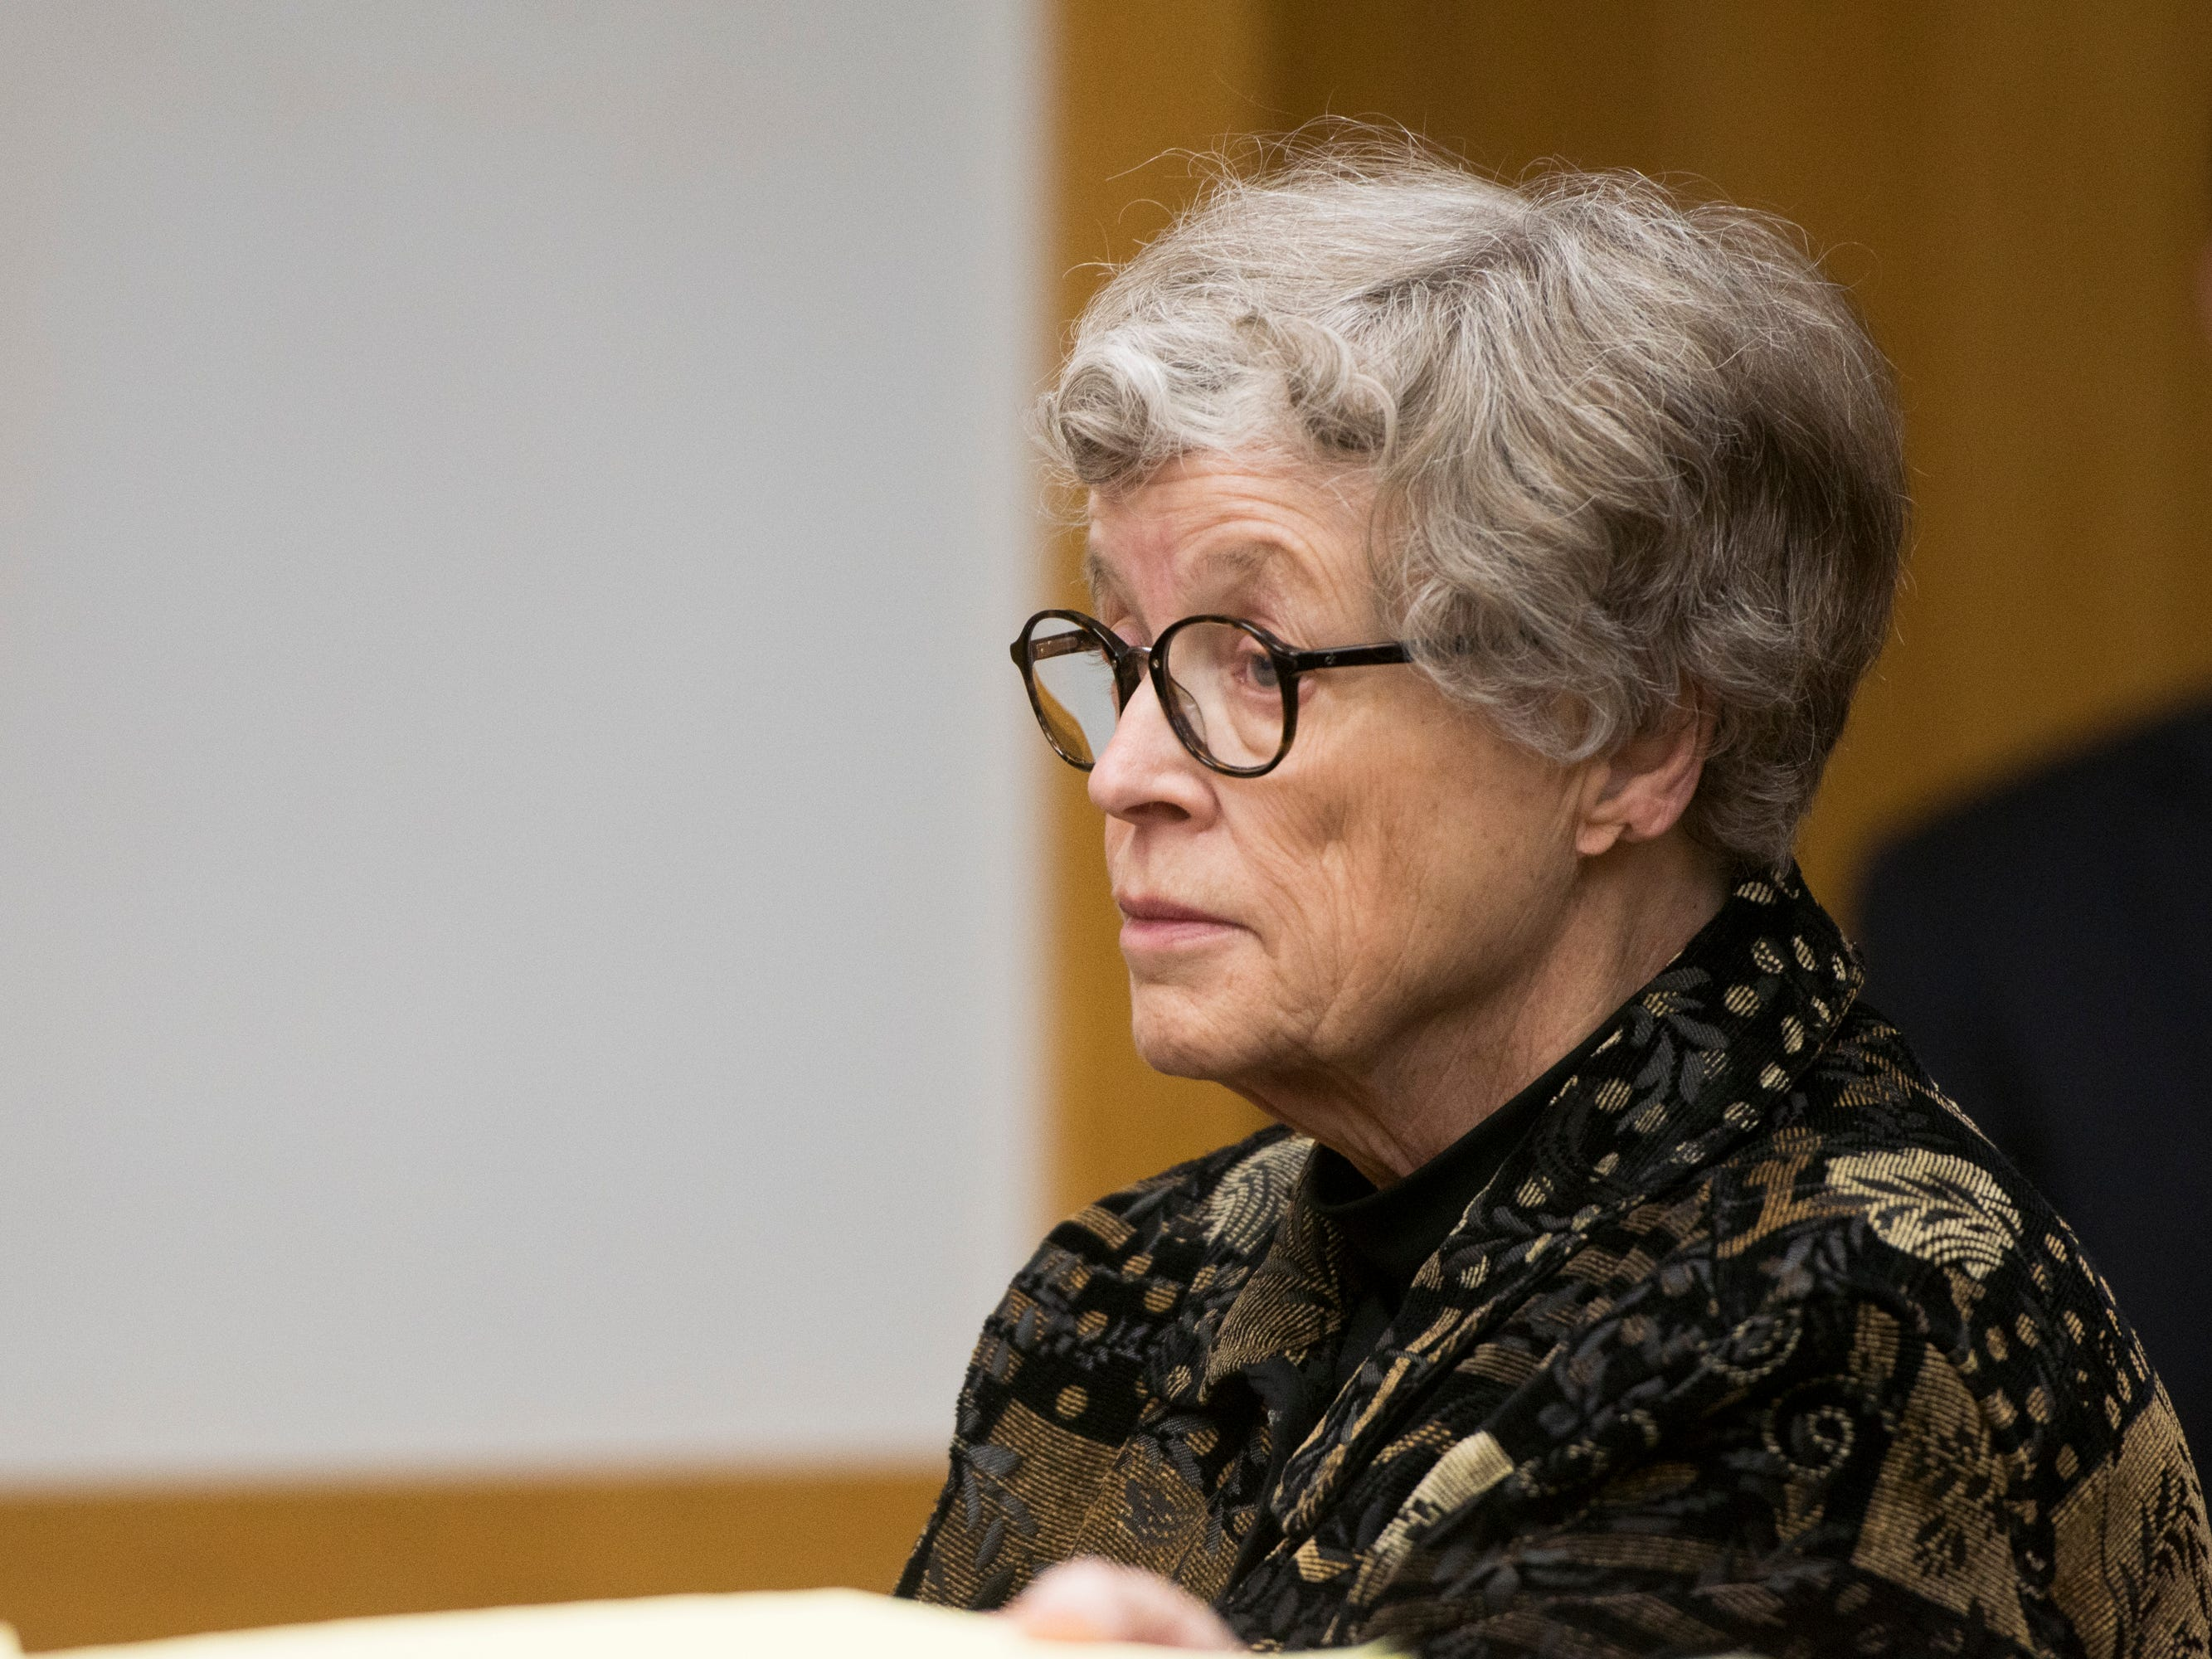 Former MSU President Lou Anna Simon appears in District Judge Julie Reincke's courtroom, Tuesday, Feb. 5, 2019, in Charlotte, Michigan for the first day of her preliminary hearing.  Simon faces four charges, including two felonies, because investigators say she lied to police about when she knew about a sexual assault report against former MSU doctor Larry Nassar.  